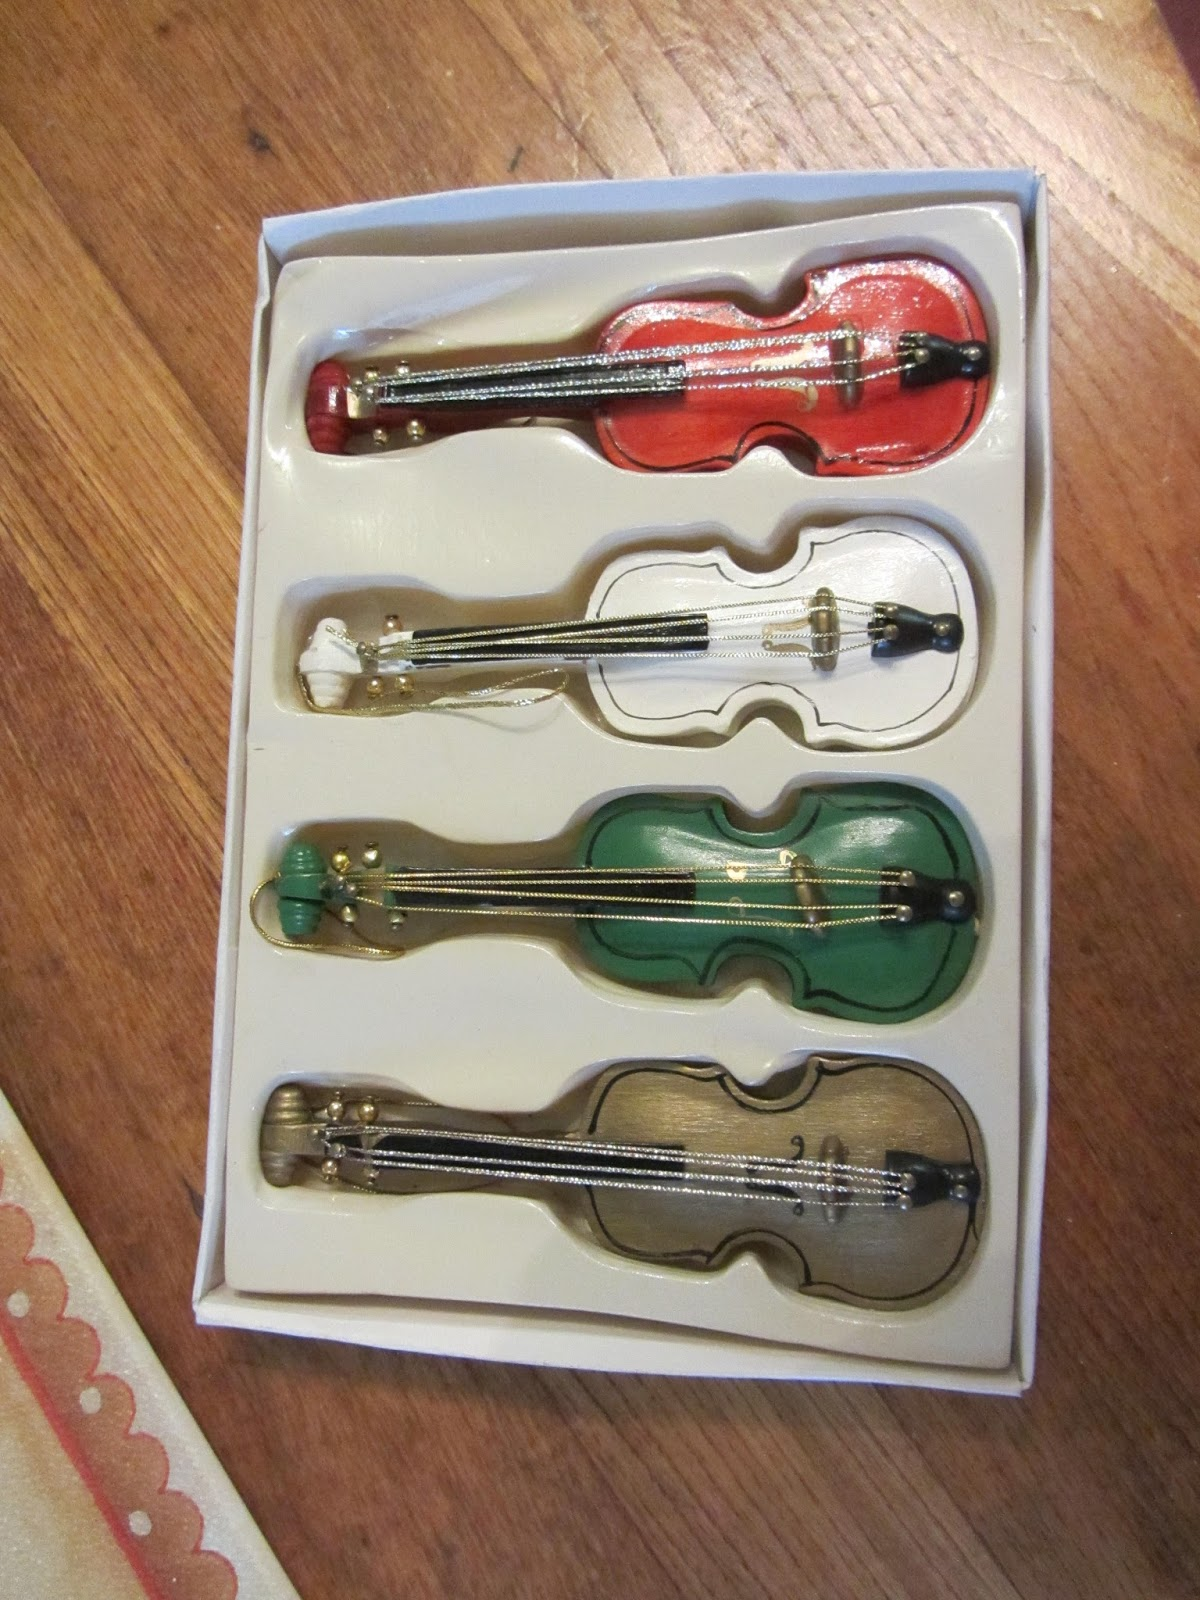 Violin christmas ornaments - I Purchased These Four Little Wooden Violins At The Thrift Shop For 2 Or 50 Cents Per Ornament